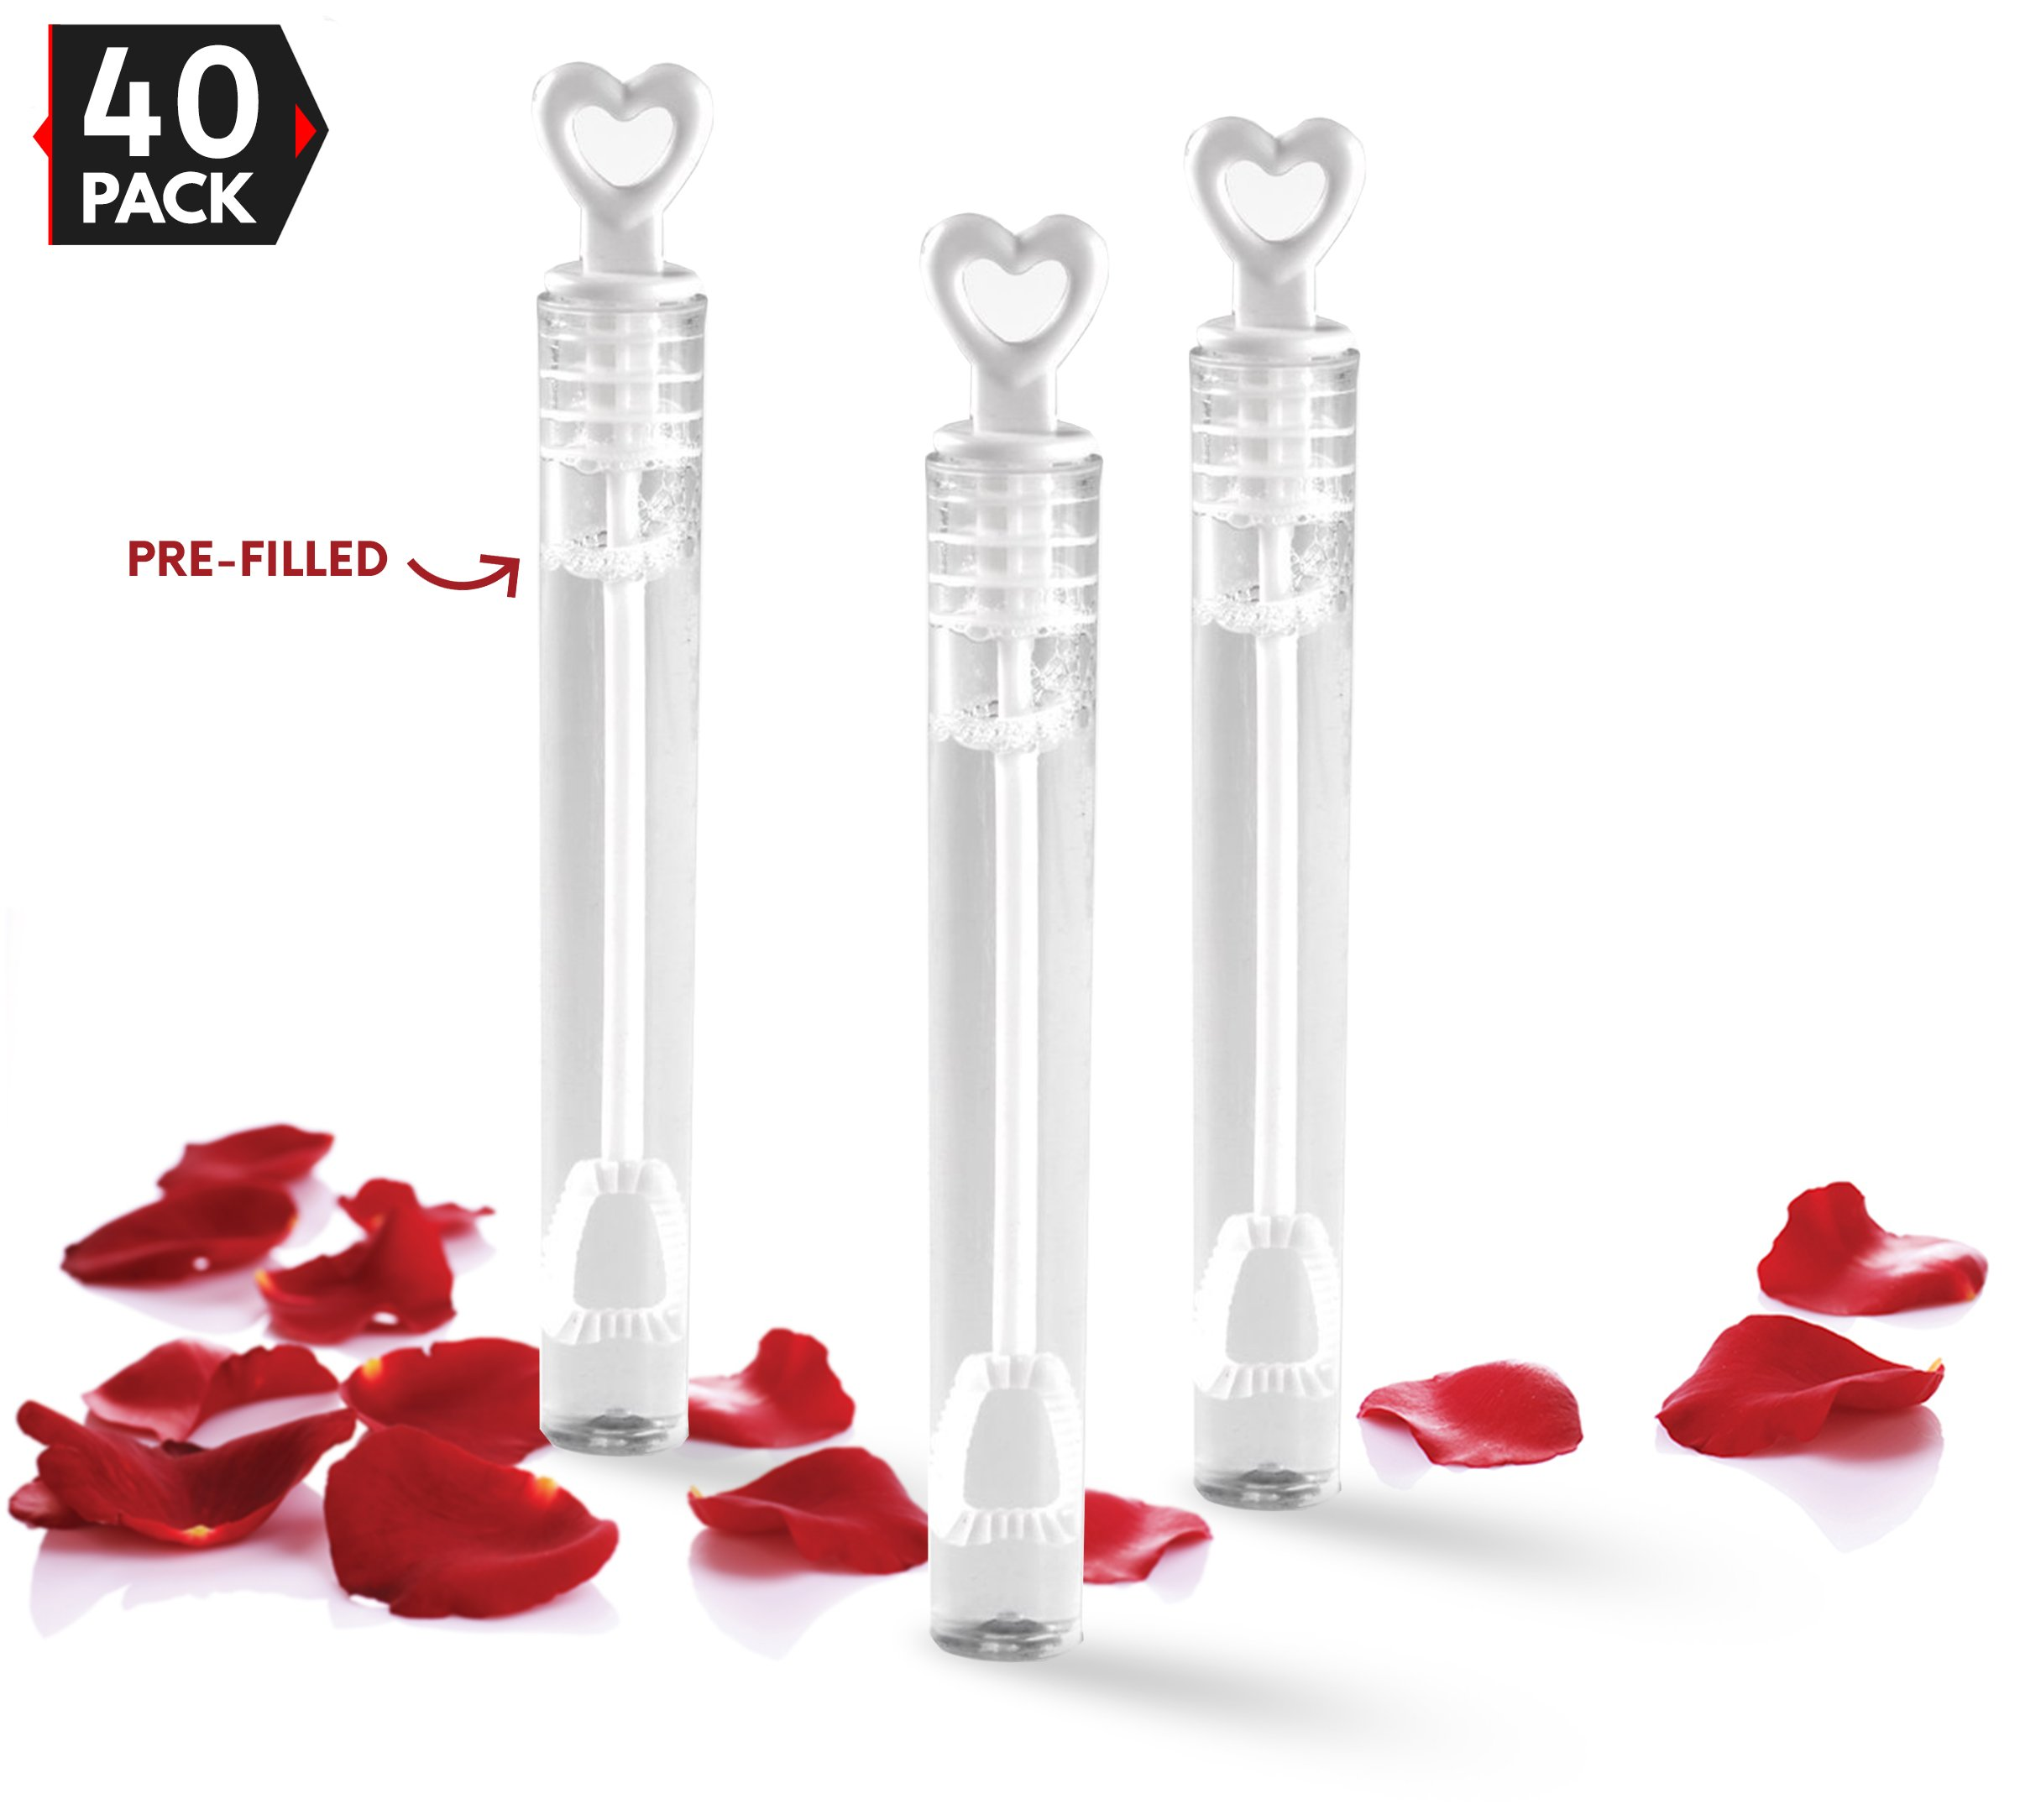 40 Pack Mini Heart Bubble Wands – Great Wand Bubbles Party Favors For Weddings and Anniversaries by Big Mo's Toys by Big Mo's Toys